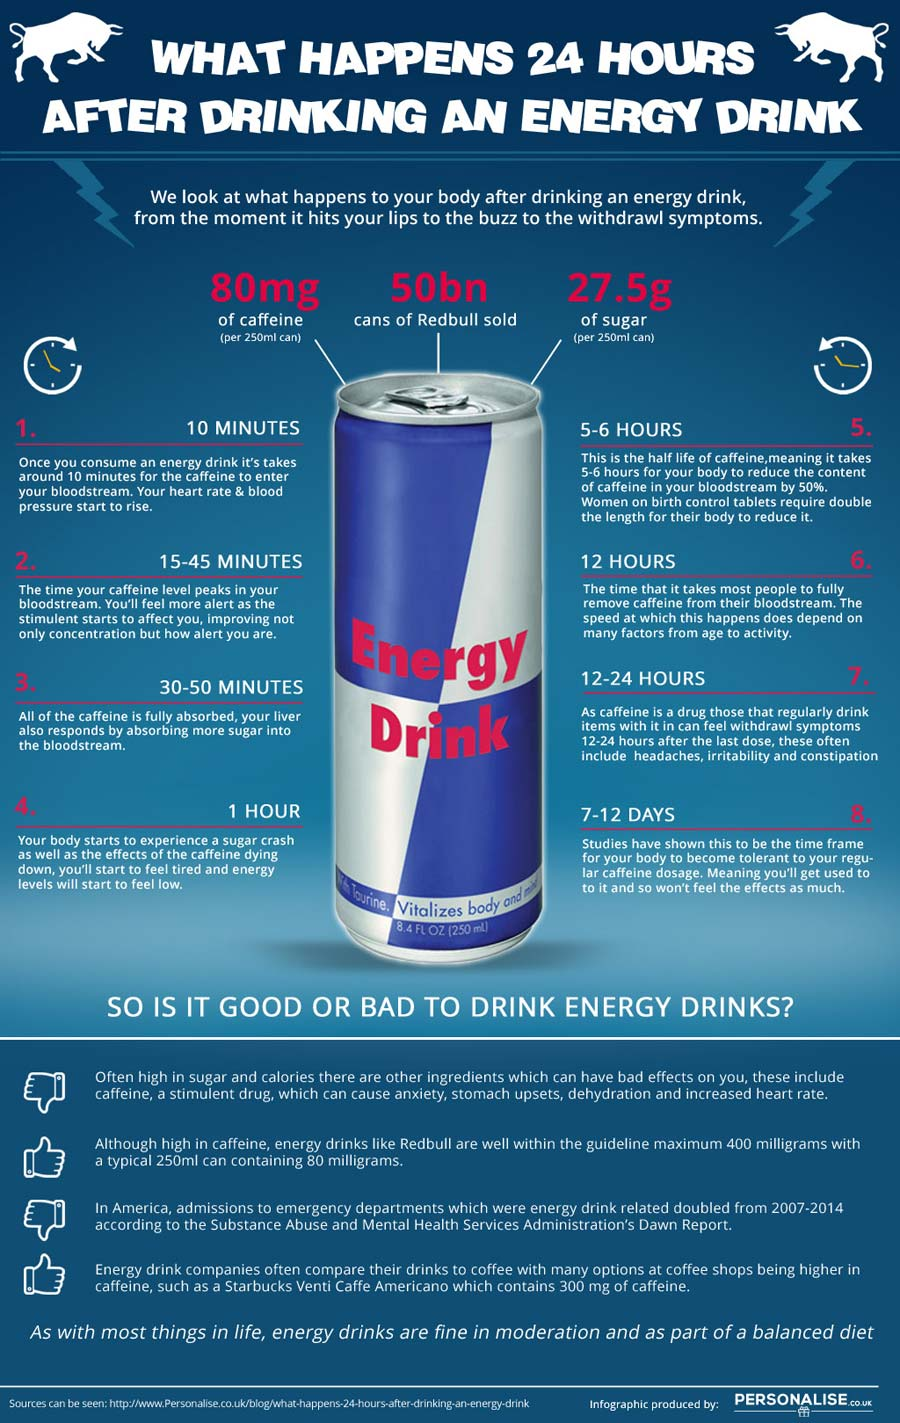 An infographic for energy drink consumption